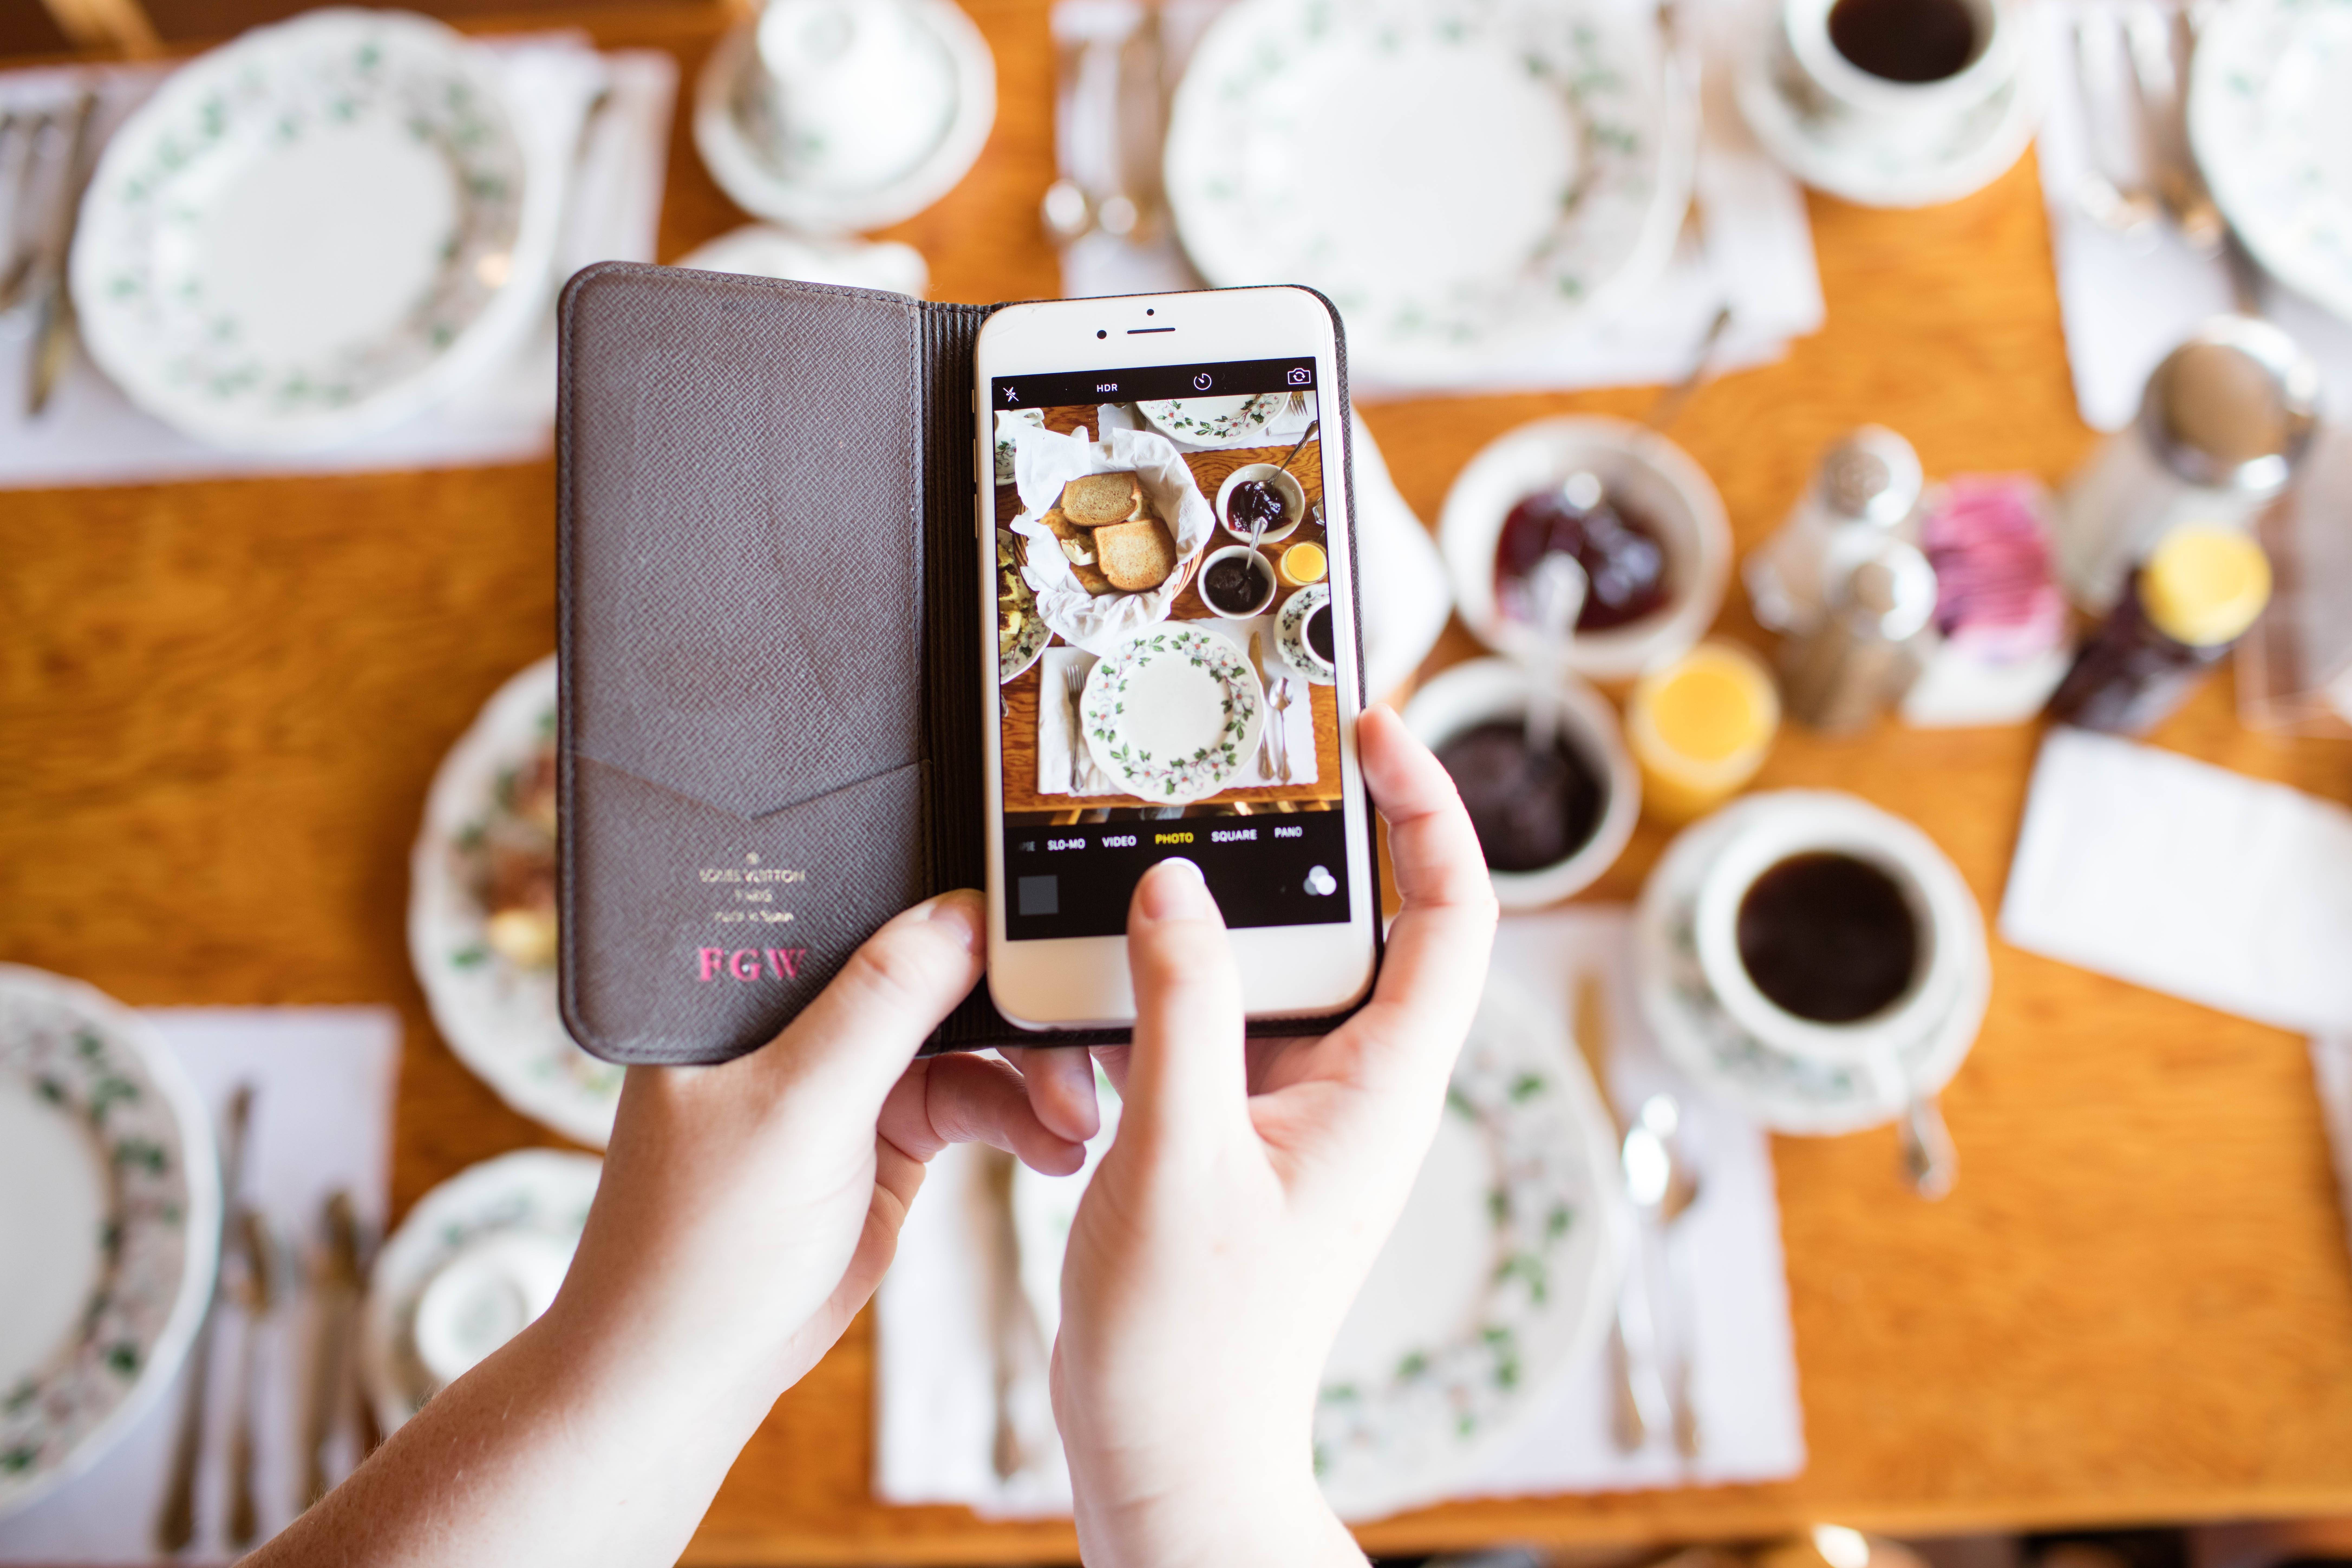 MWOA six must-have apps for iPhone photos and Instagram